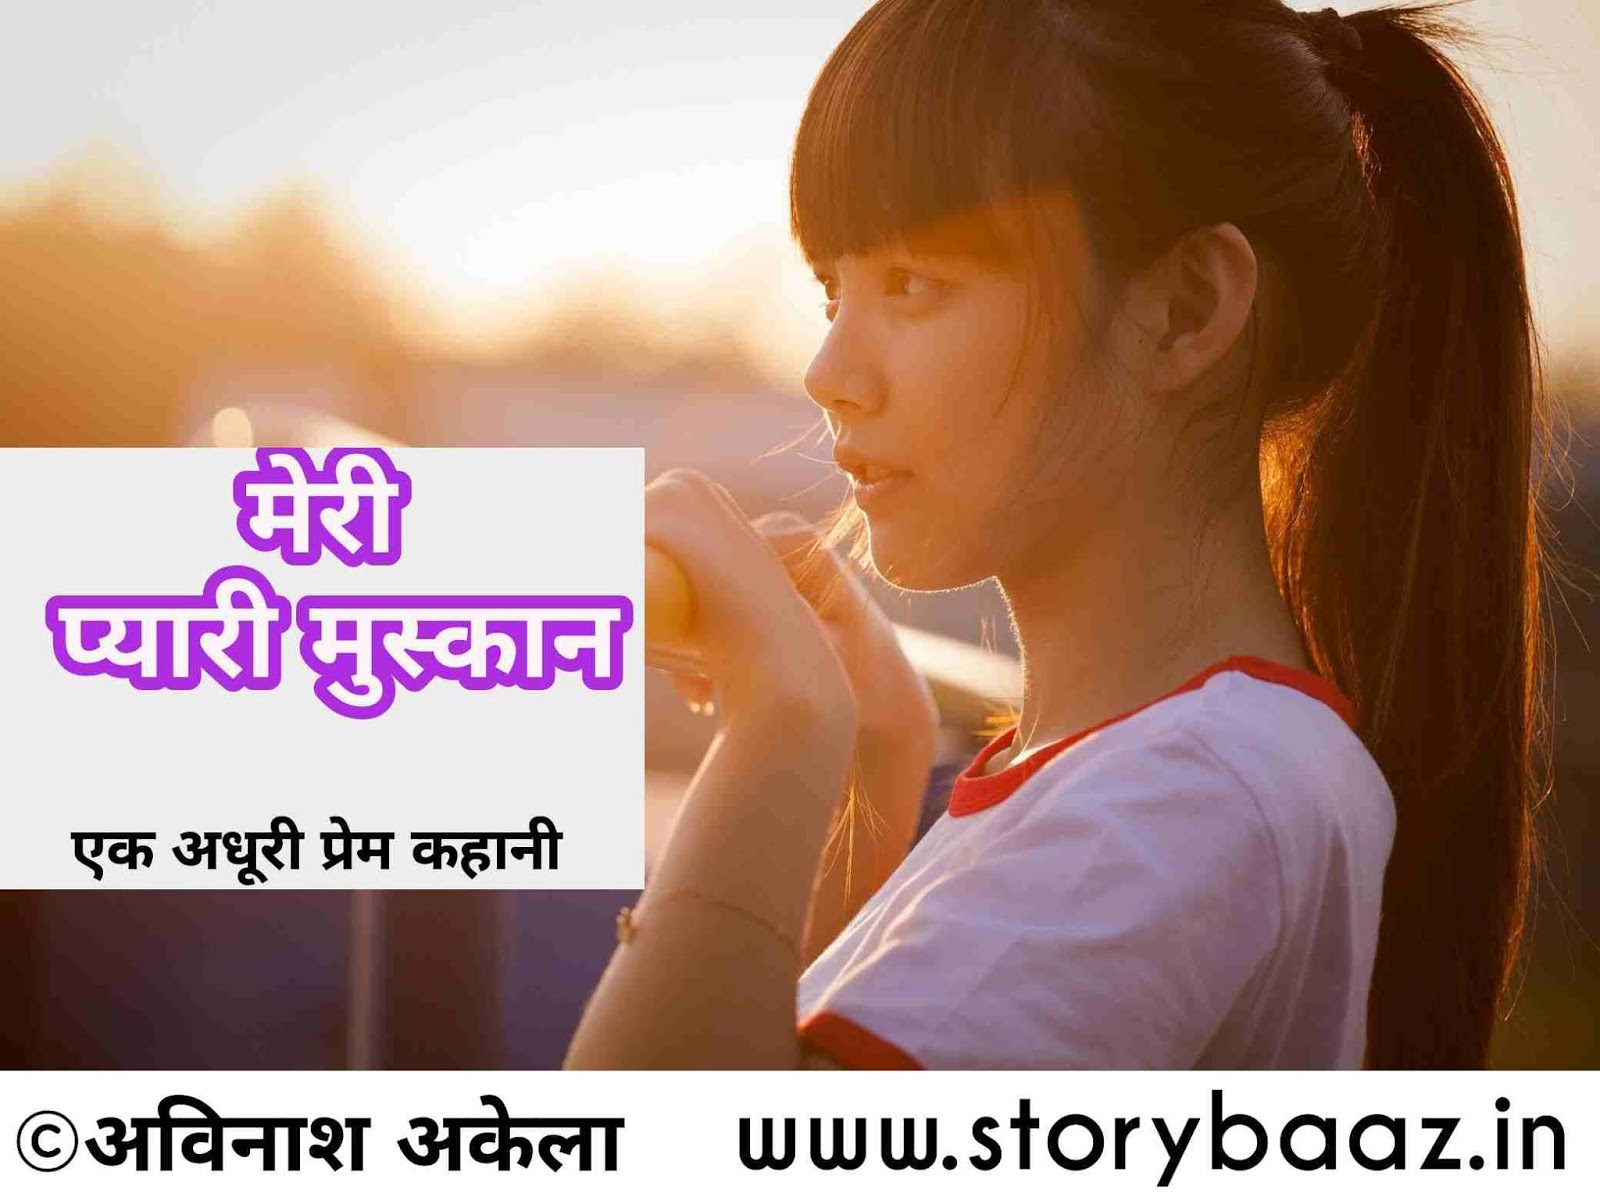 Love-Feeling-sad-love-stories-in-hindi-school-love-story-in-hindi-storybaaz-avinash-akela-story